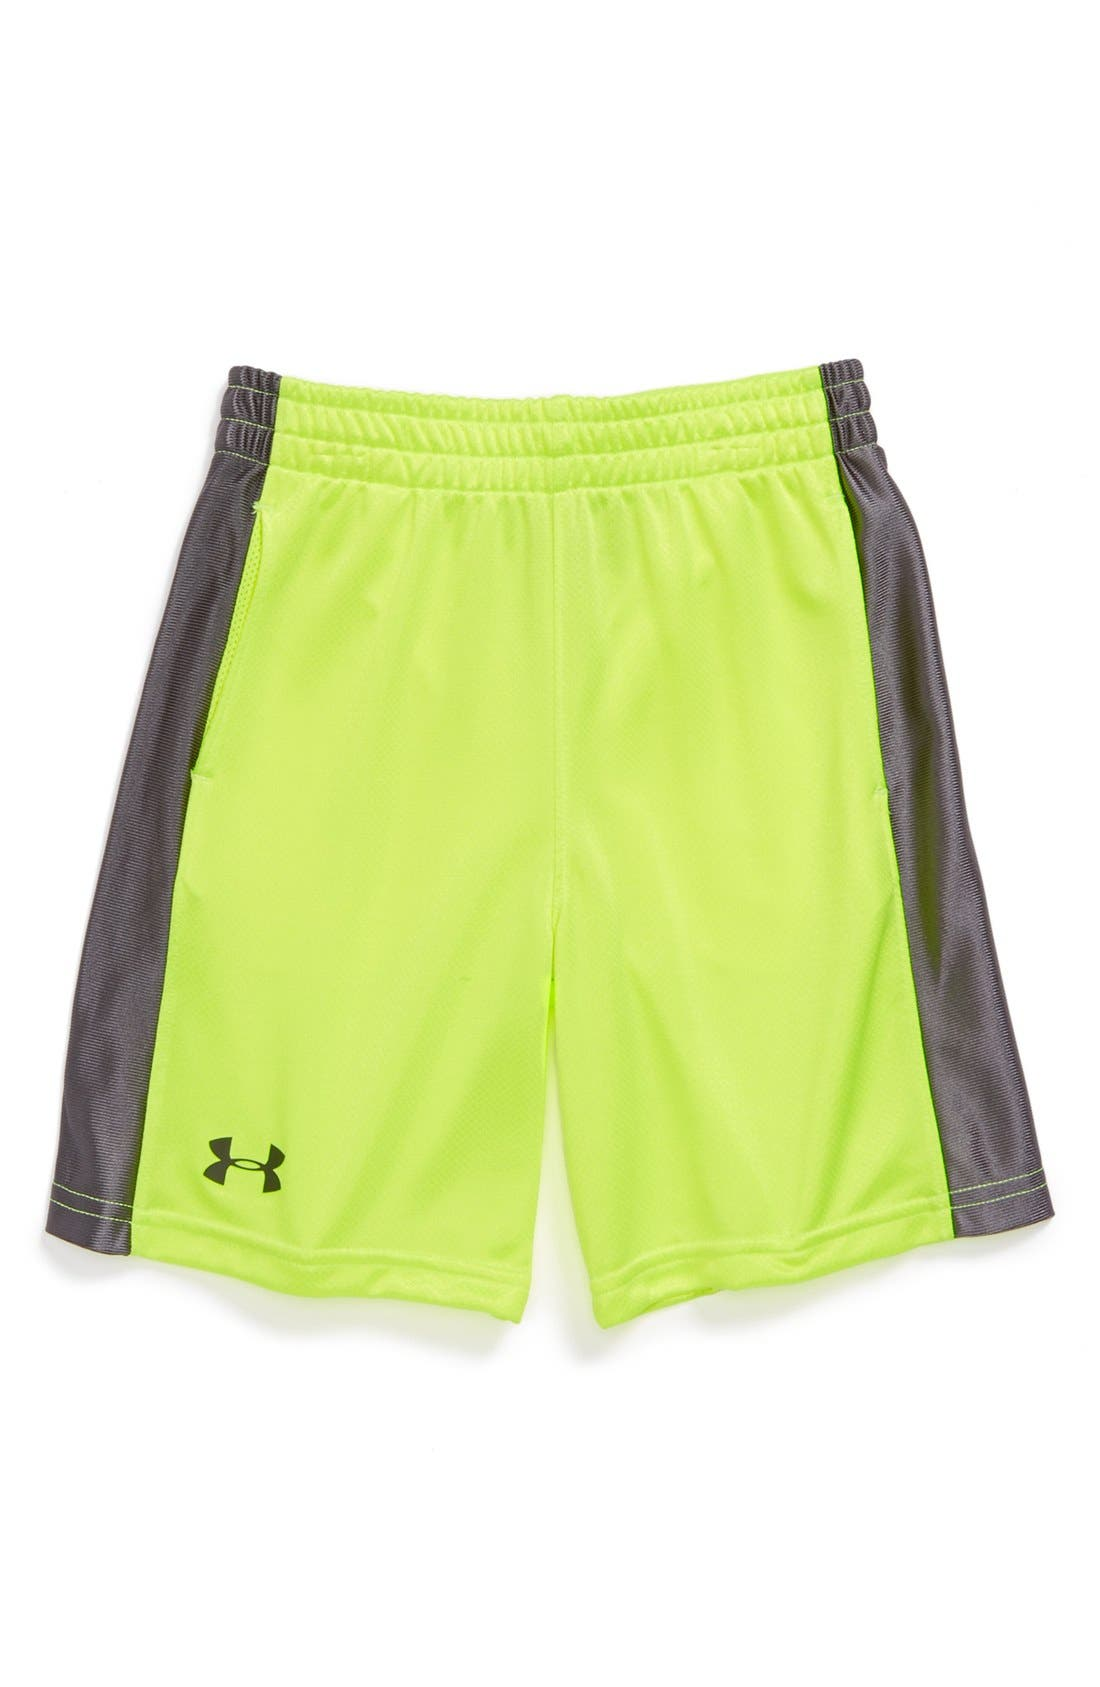 Alternate Image 1 Selected - Under Armour 'Pop Ultimate' Shorts (Little Boys)